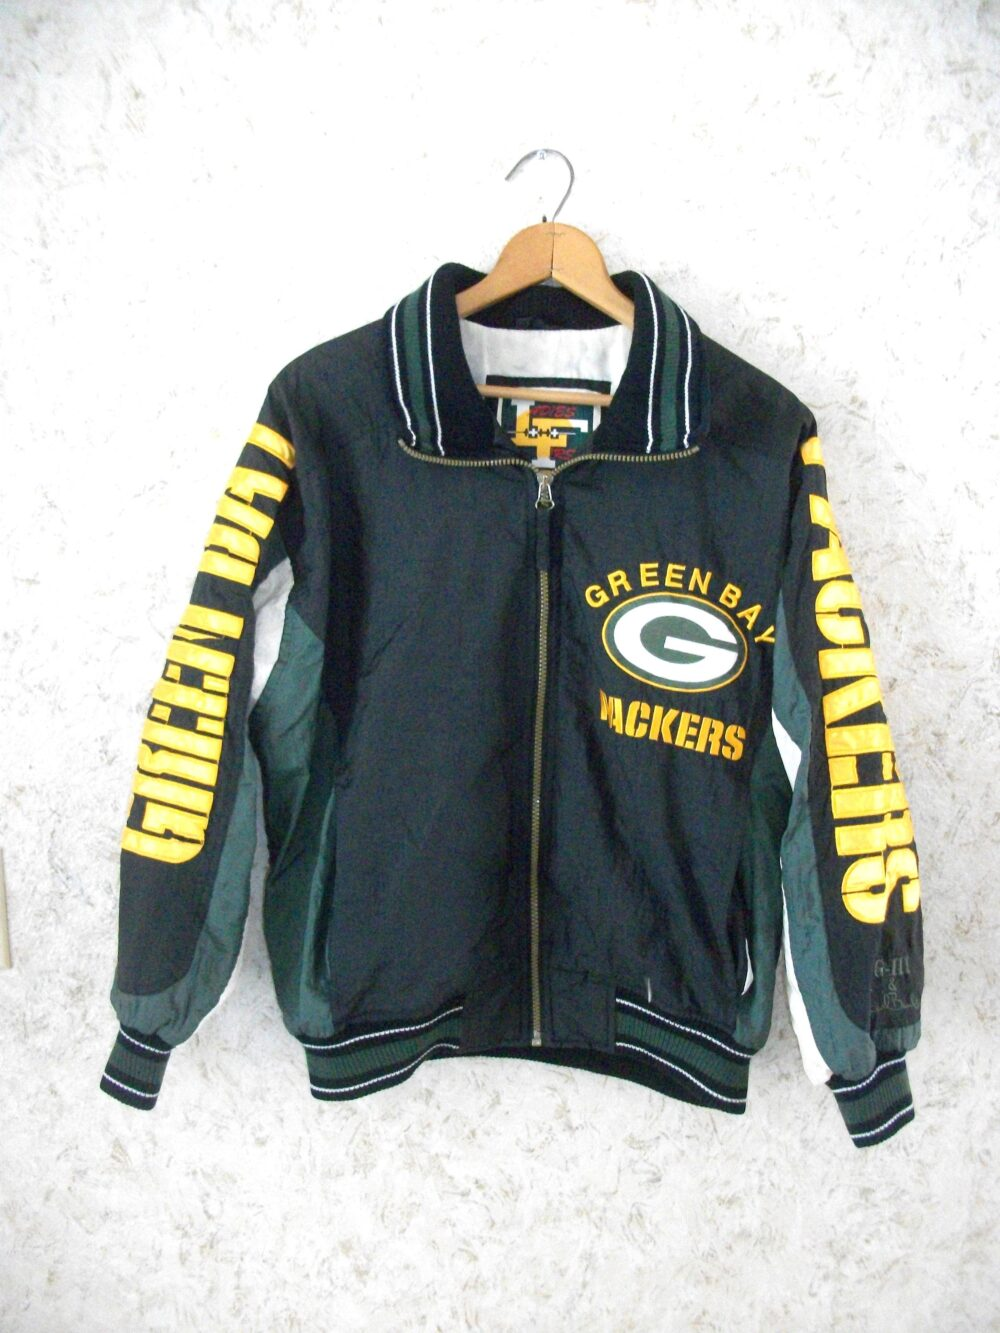 Vintage 90S Green Bay Packers Giii Carl Banks Nylon Jacket Zippered Front Black Gold G Logo Nfl Football Ladies First Womens Small